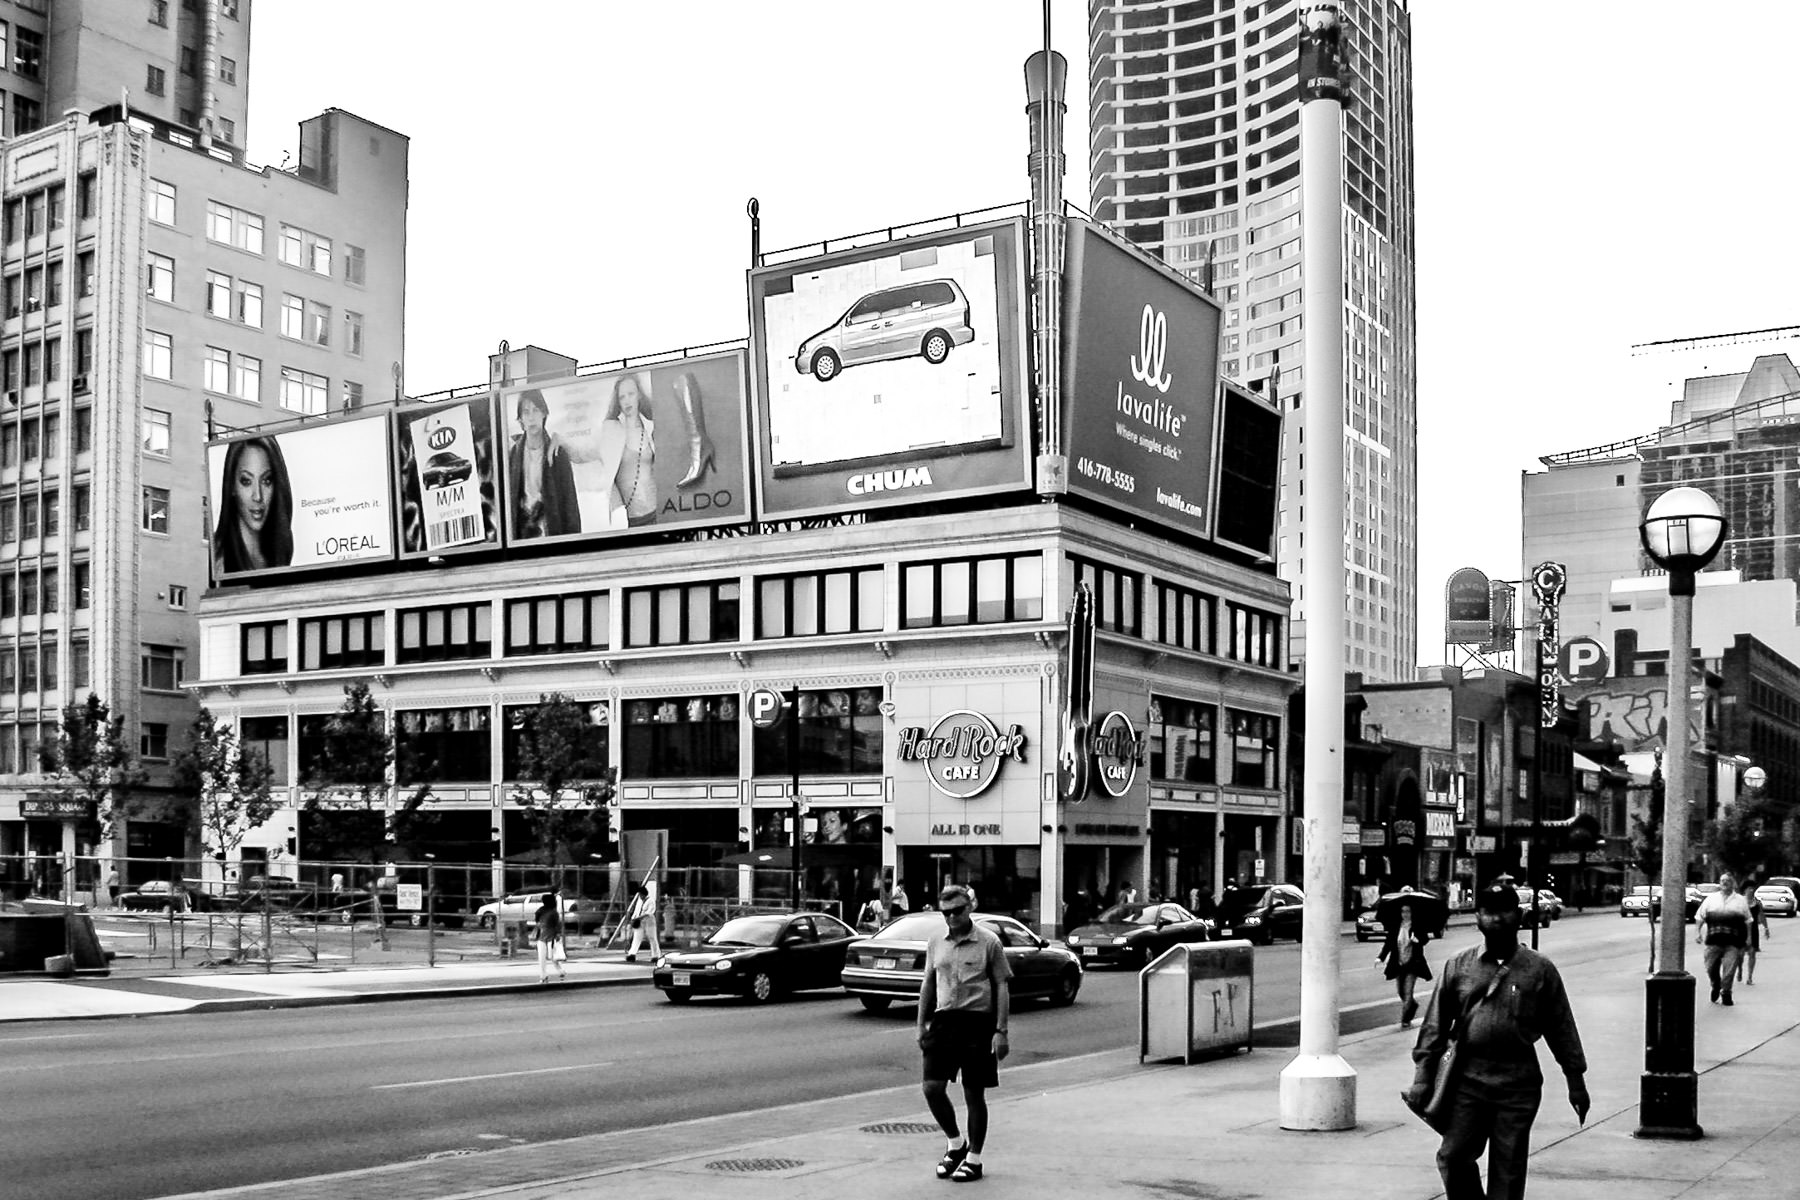 Toronto's Hard Rock Cafe sits across from the city's landmark Dundas Square.